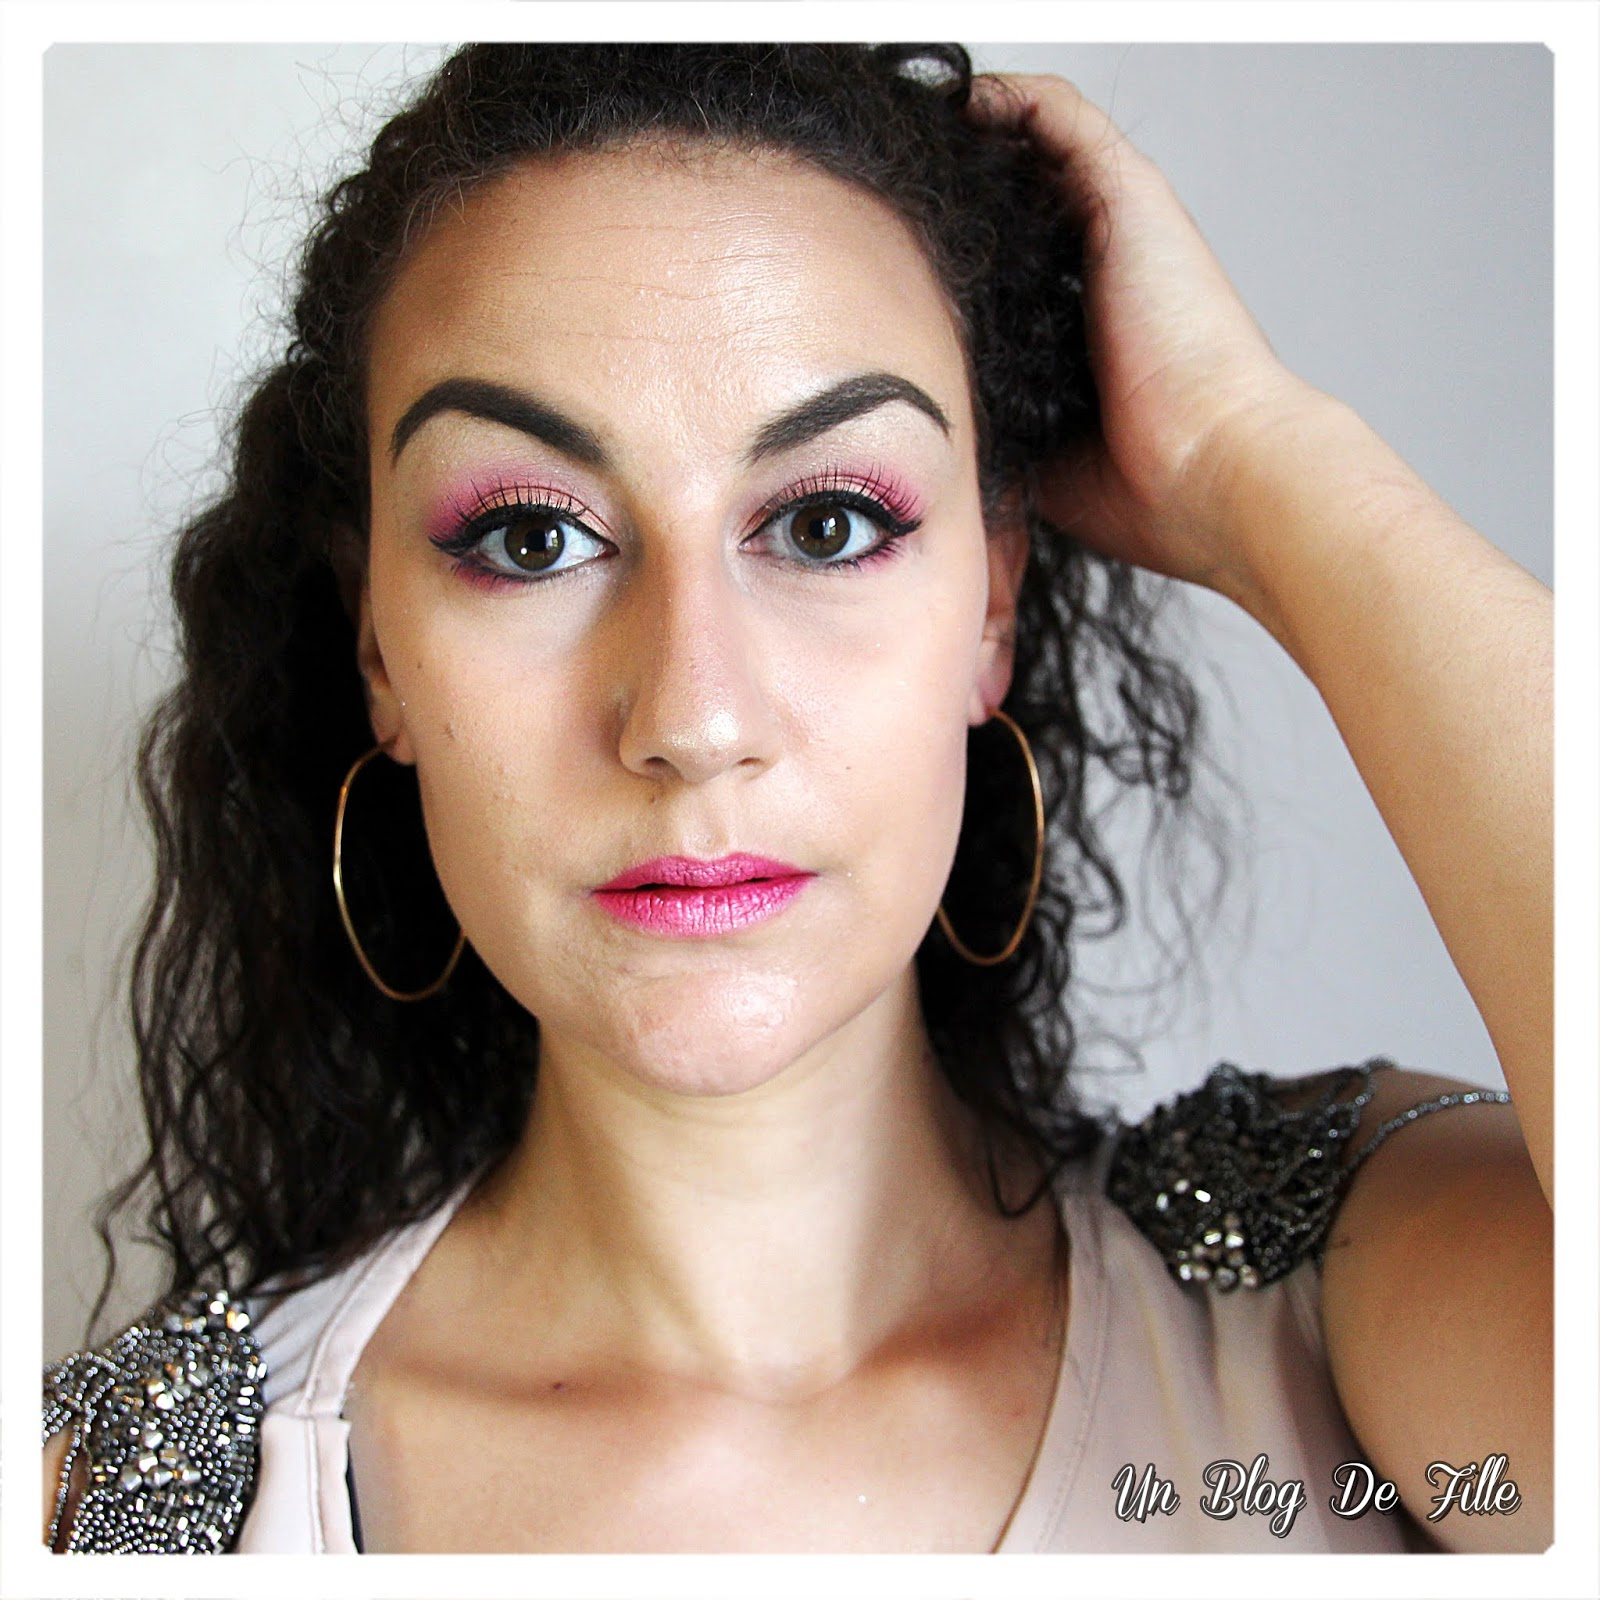 https://unblogdefille.blogspot.com/2018/05/maquillage-corail-et-rose-fushia-msc.html